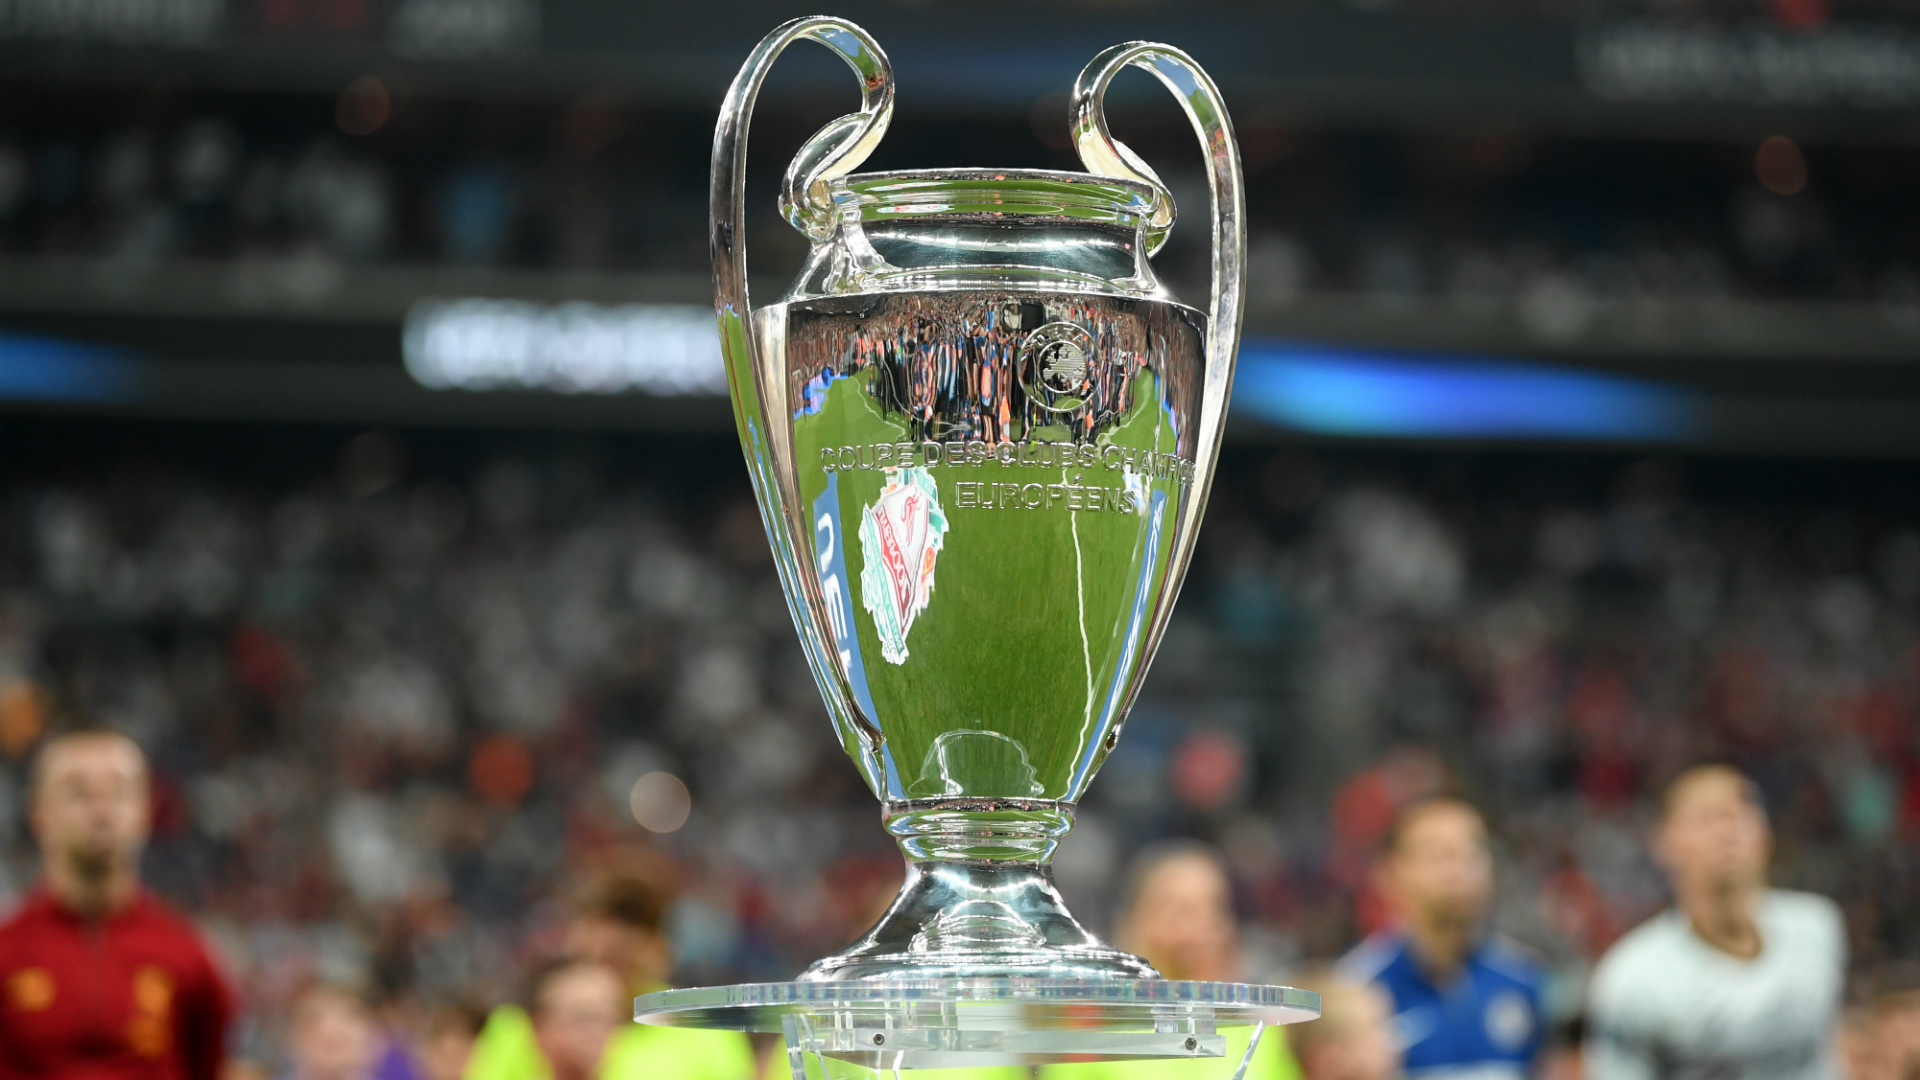 2019–20 UEFA Champions League Round of 16 Draw Free Live Streaming Online: Where to Watch Live Telecast of UCL Last 16 Draw and Results on TV in Indian Time (IST)